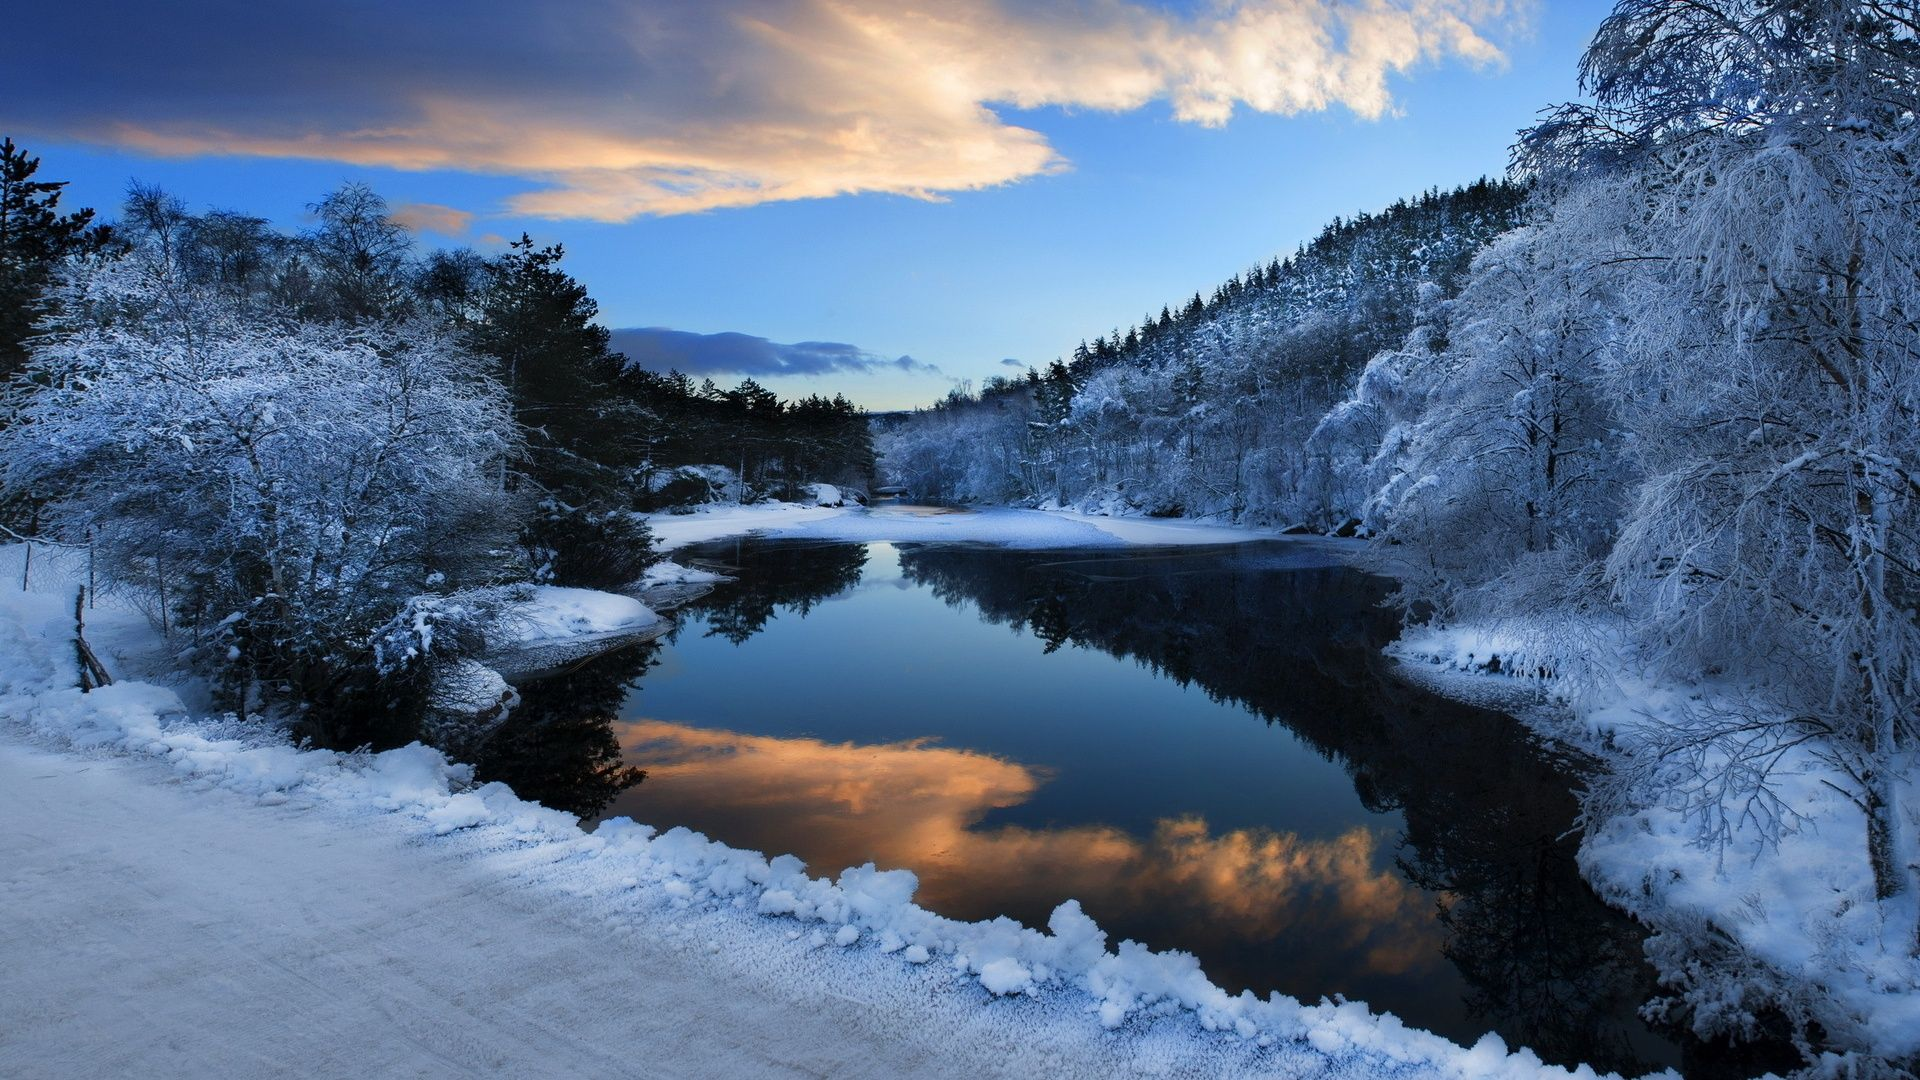 Winter Snow Scenes pc wallpaper